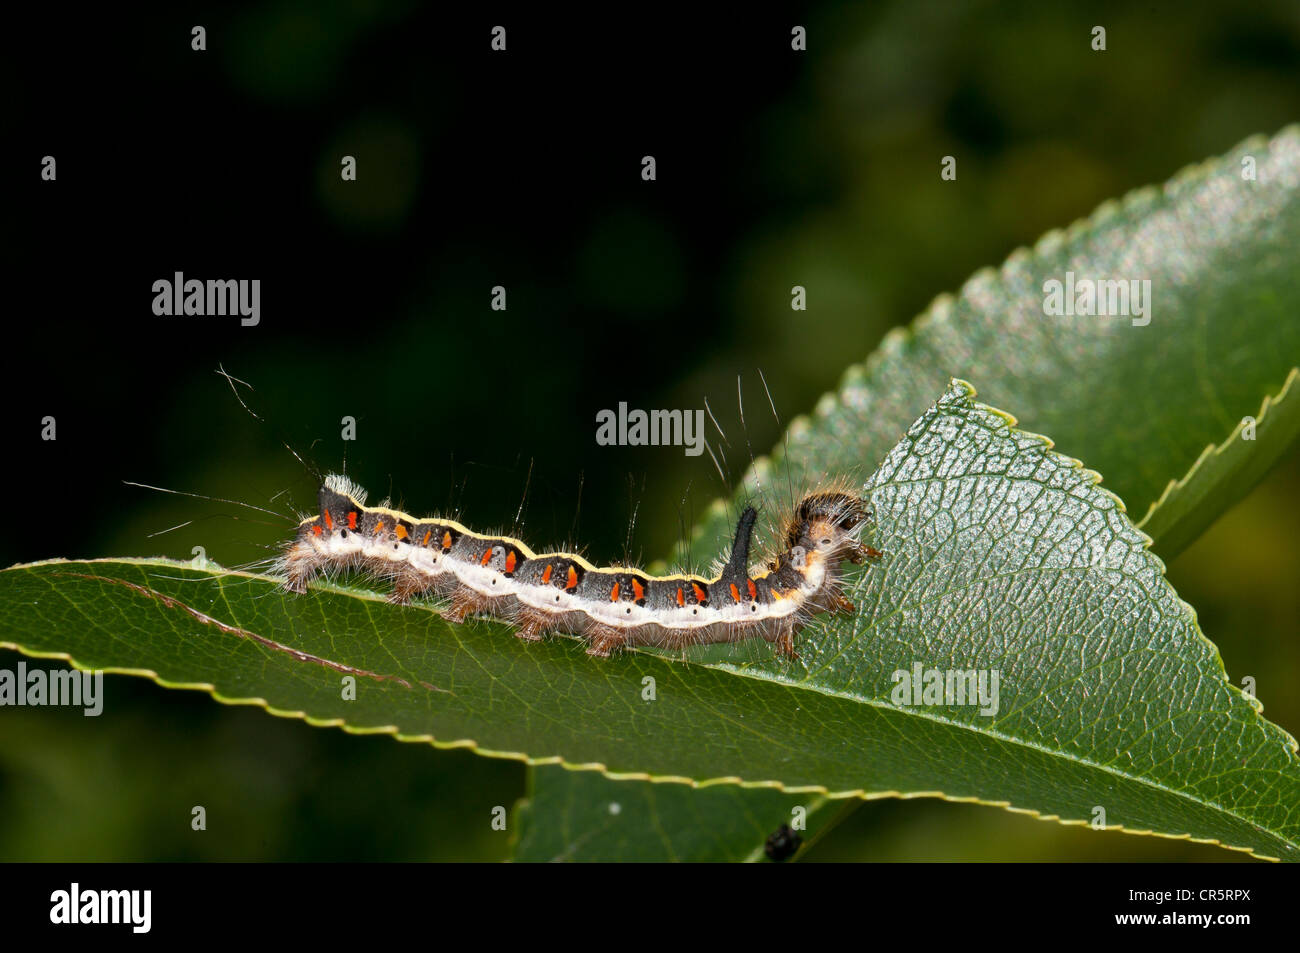 Caterpillar of a Grey Dagger Moth (Acronicta psi) eating a leaf of a Bird Cherry or Hackberry (Prunus padus), Henne Stock Photo